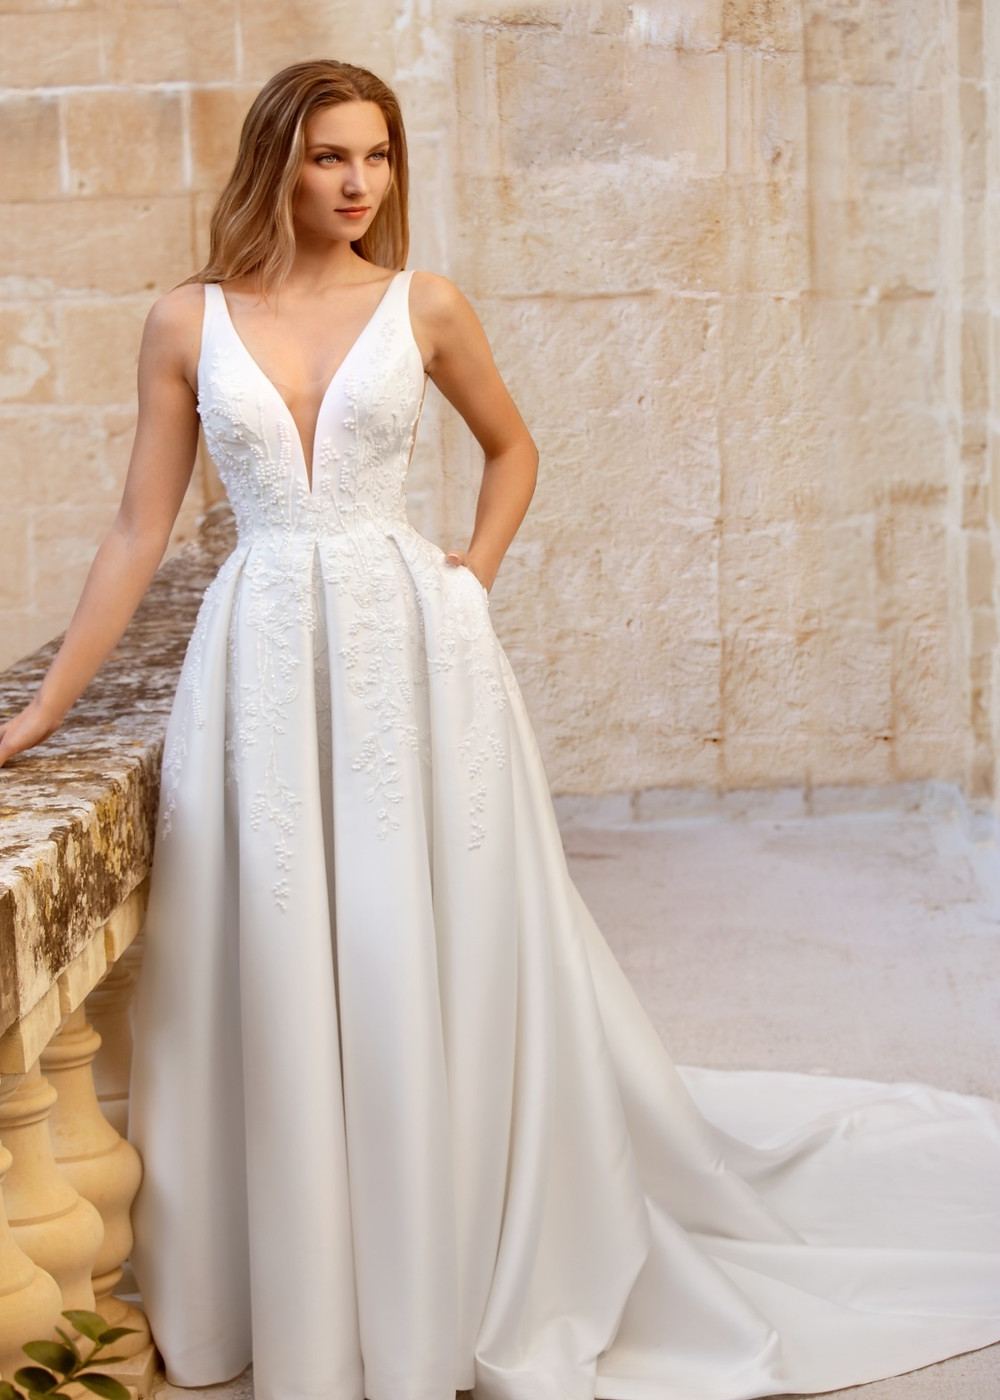 Imperial Topaz by Dando London. Wedding dress suggestion for tall bride. Mikado ballgown with box pleats and deep v-neckline.